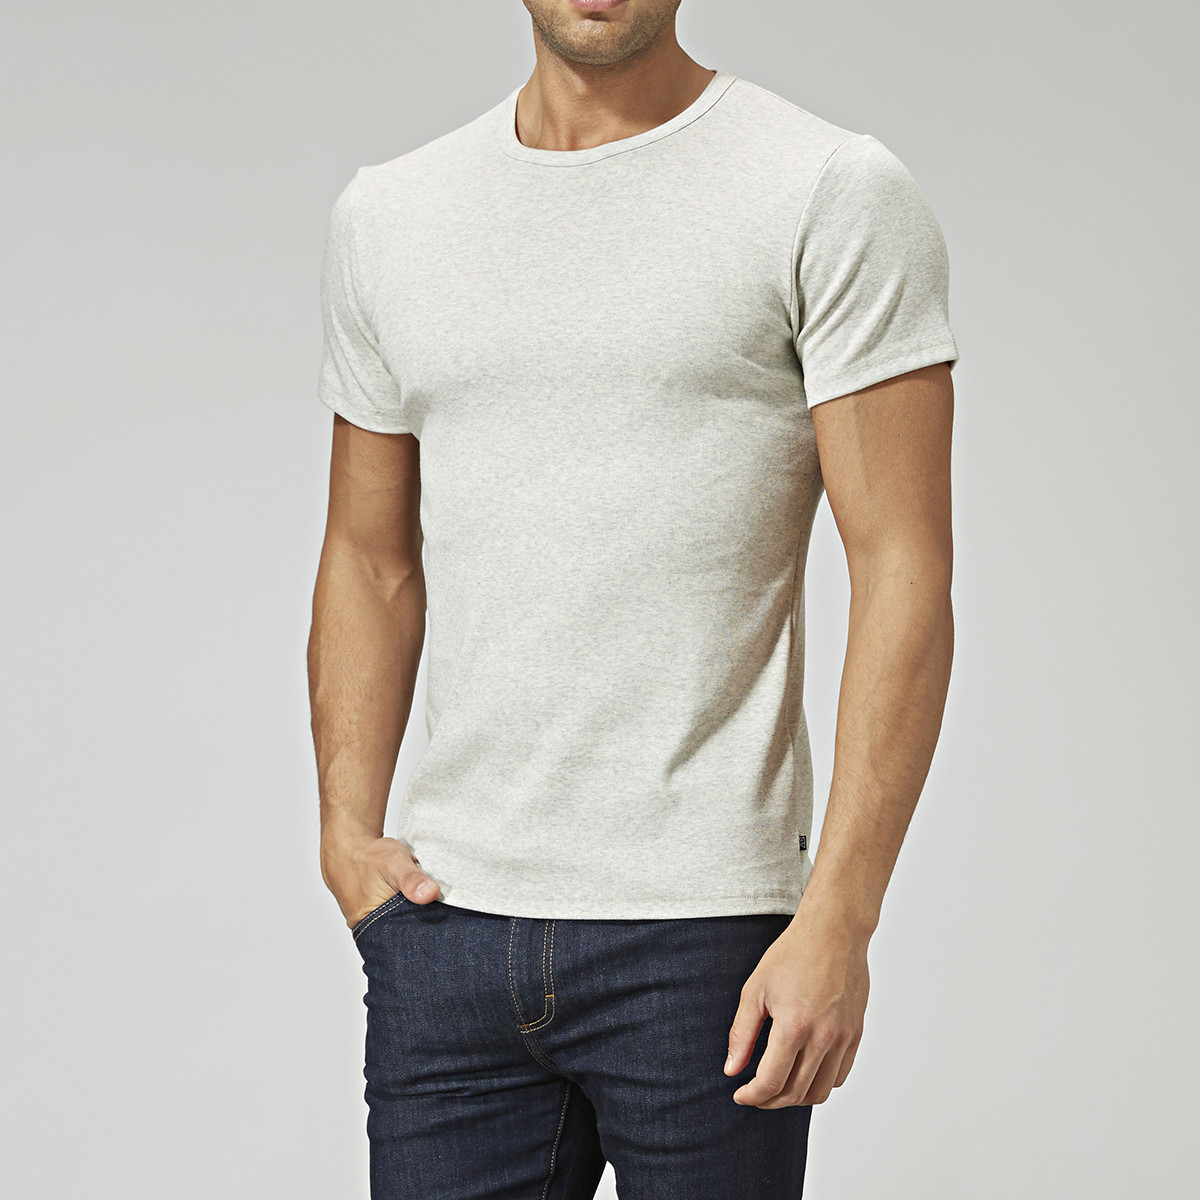 Rundhalsad bas t-shirt offwhite | East West | Brothers.se